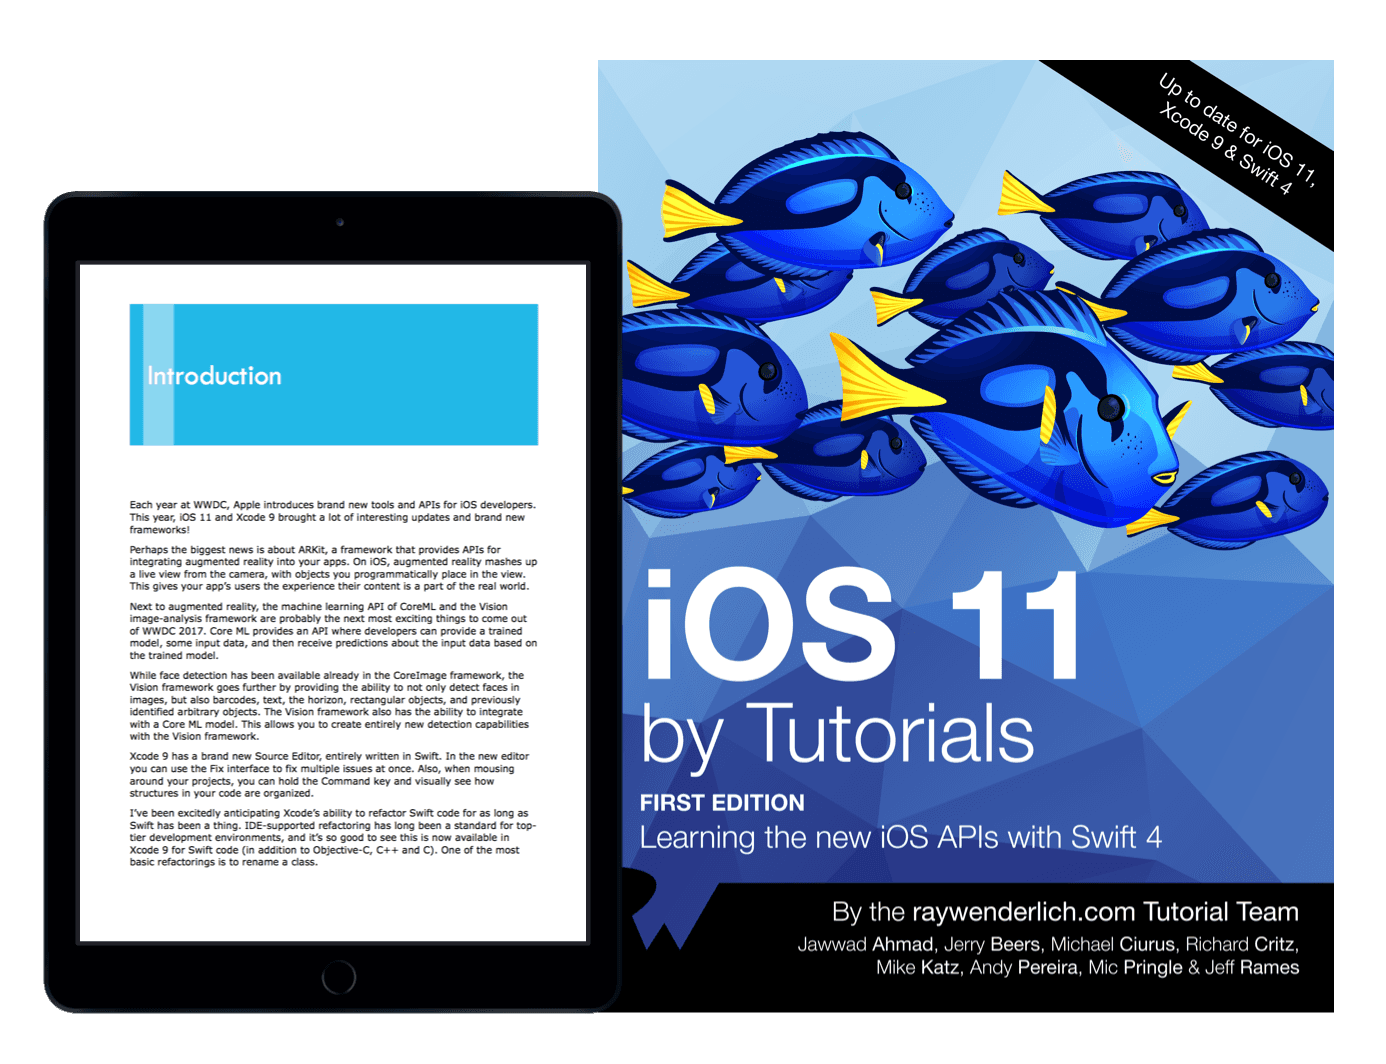 Read core data by tutorials fourth edition: ios 11 and swift 4.